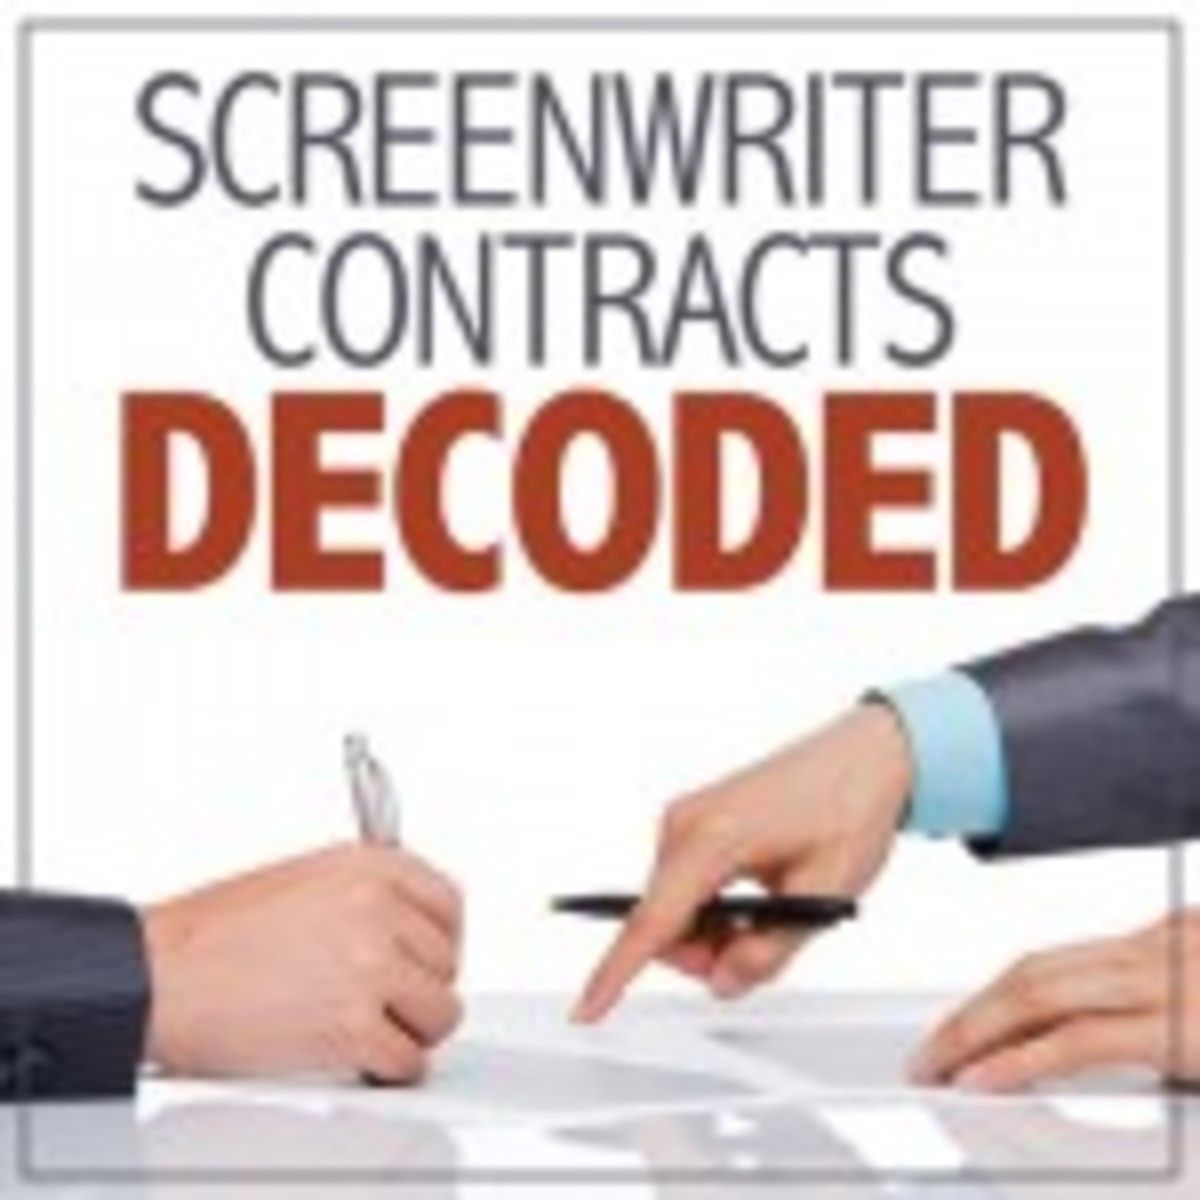 Screenwriter Contacts Decoded